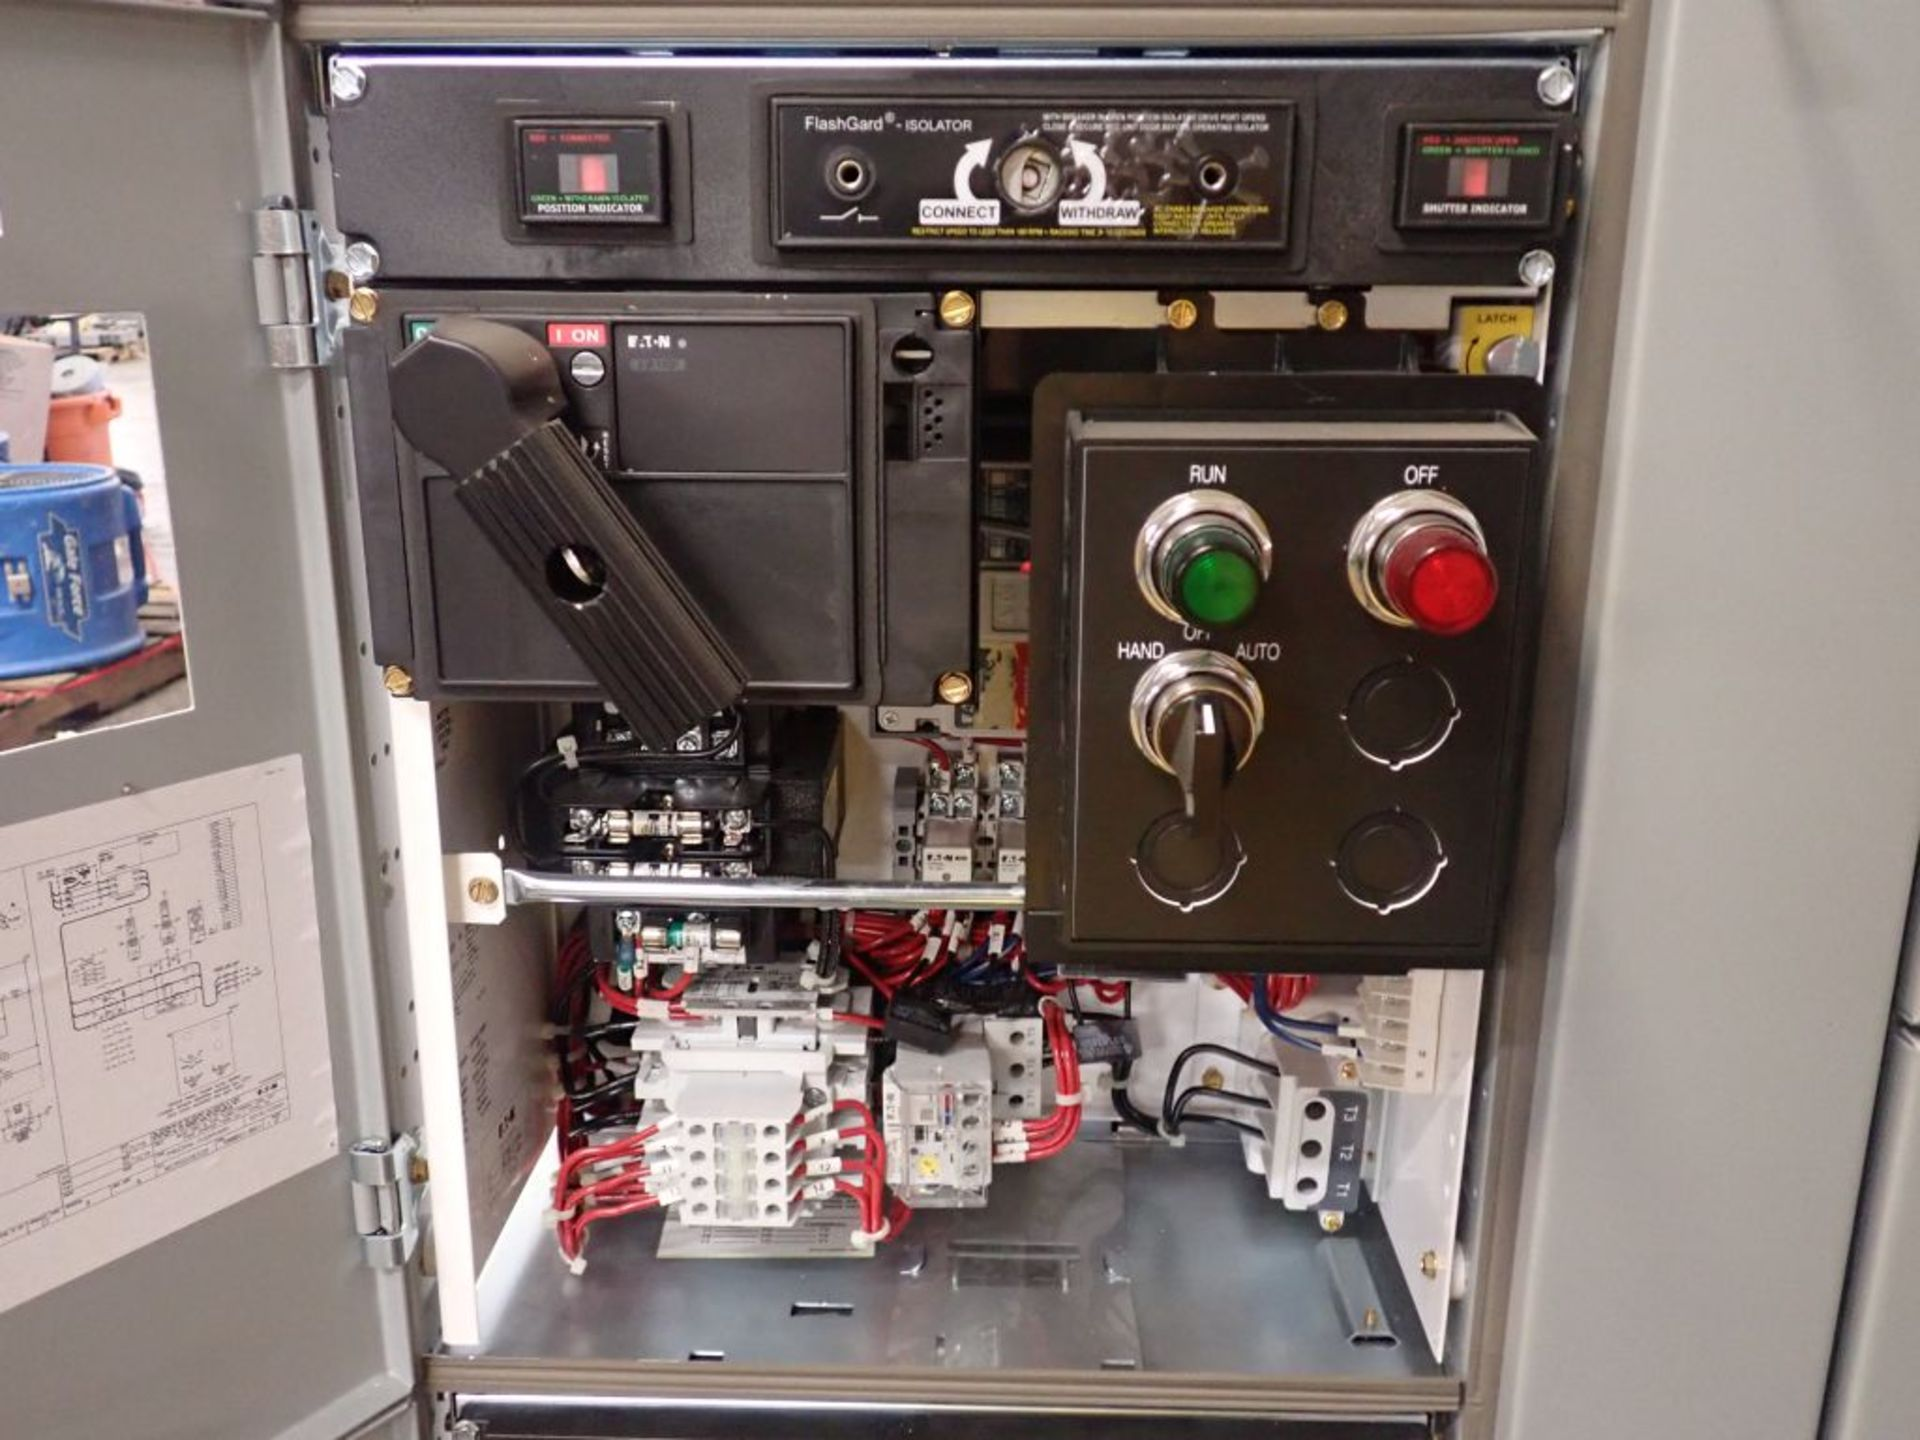 Eaton Freedom 2100 Series Motor Control Center | (2) F206-7A-10HP; (3) F206-15A-10HP; (1) FDRB-100A; - Image 56 of 87